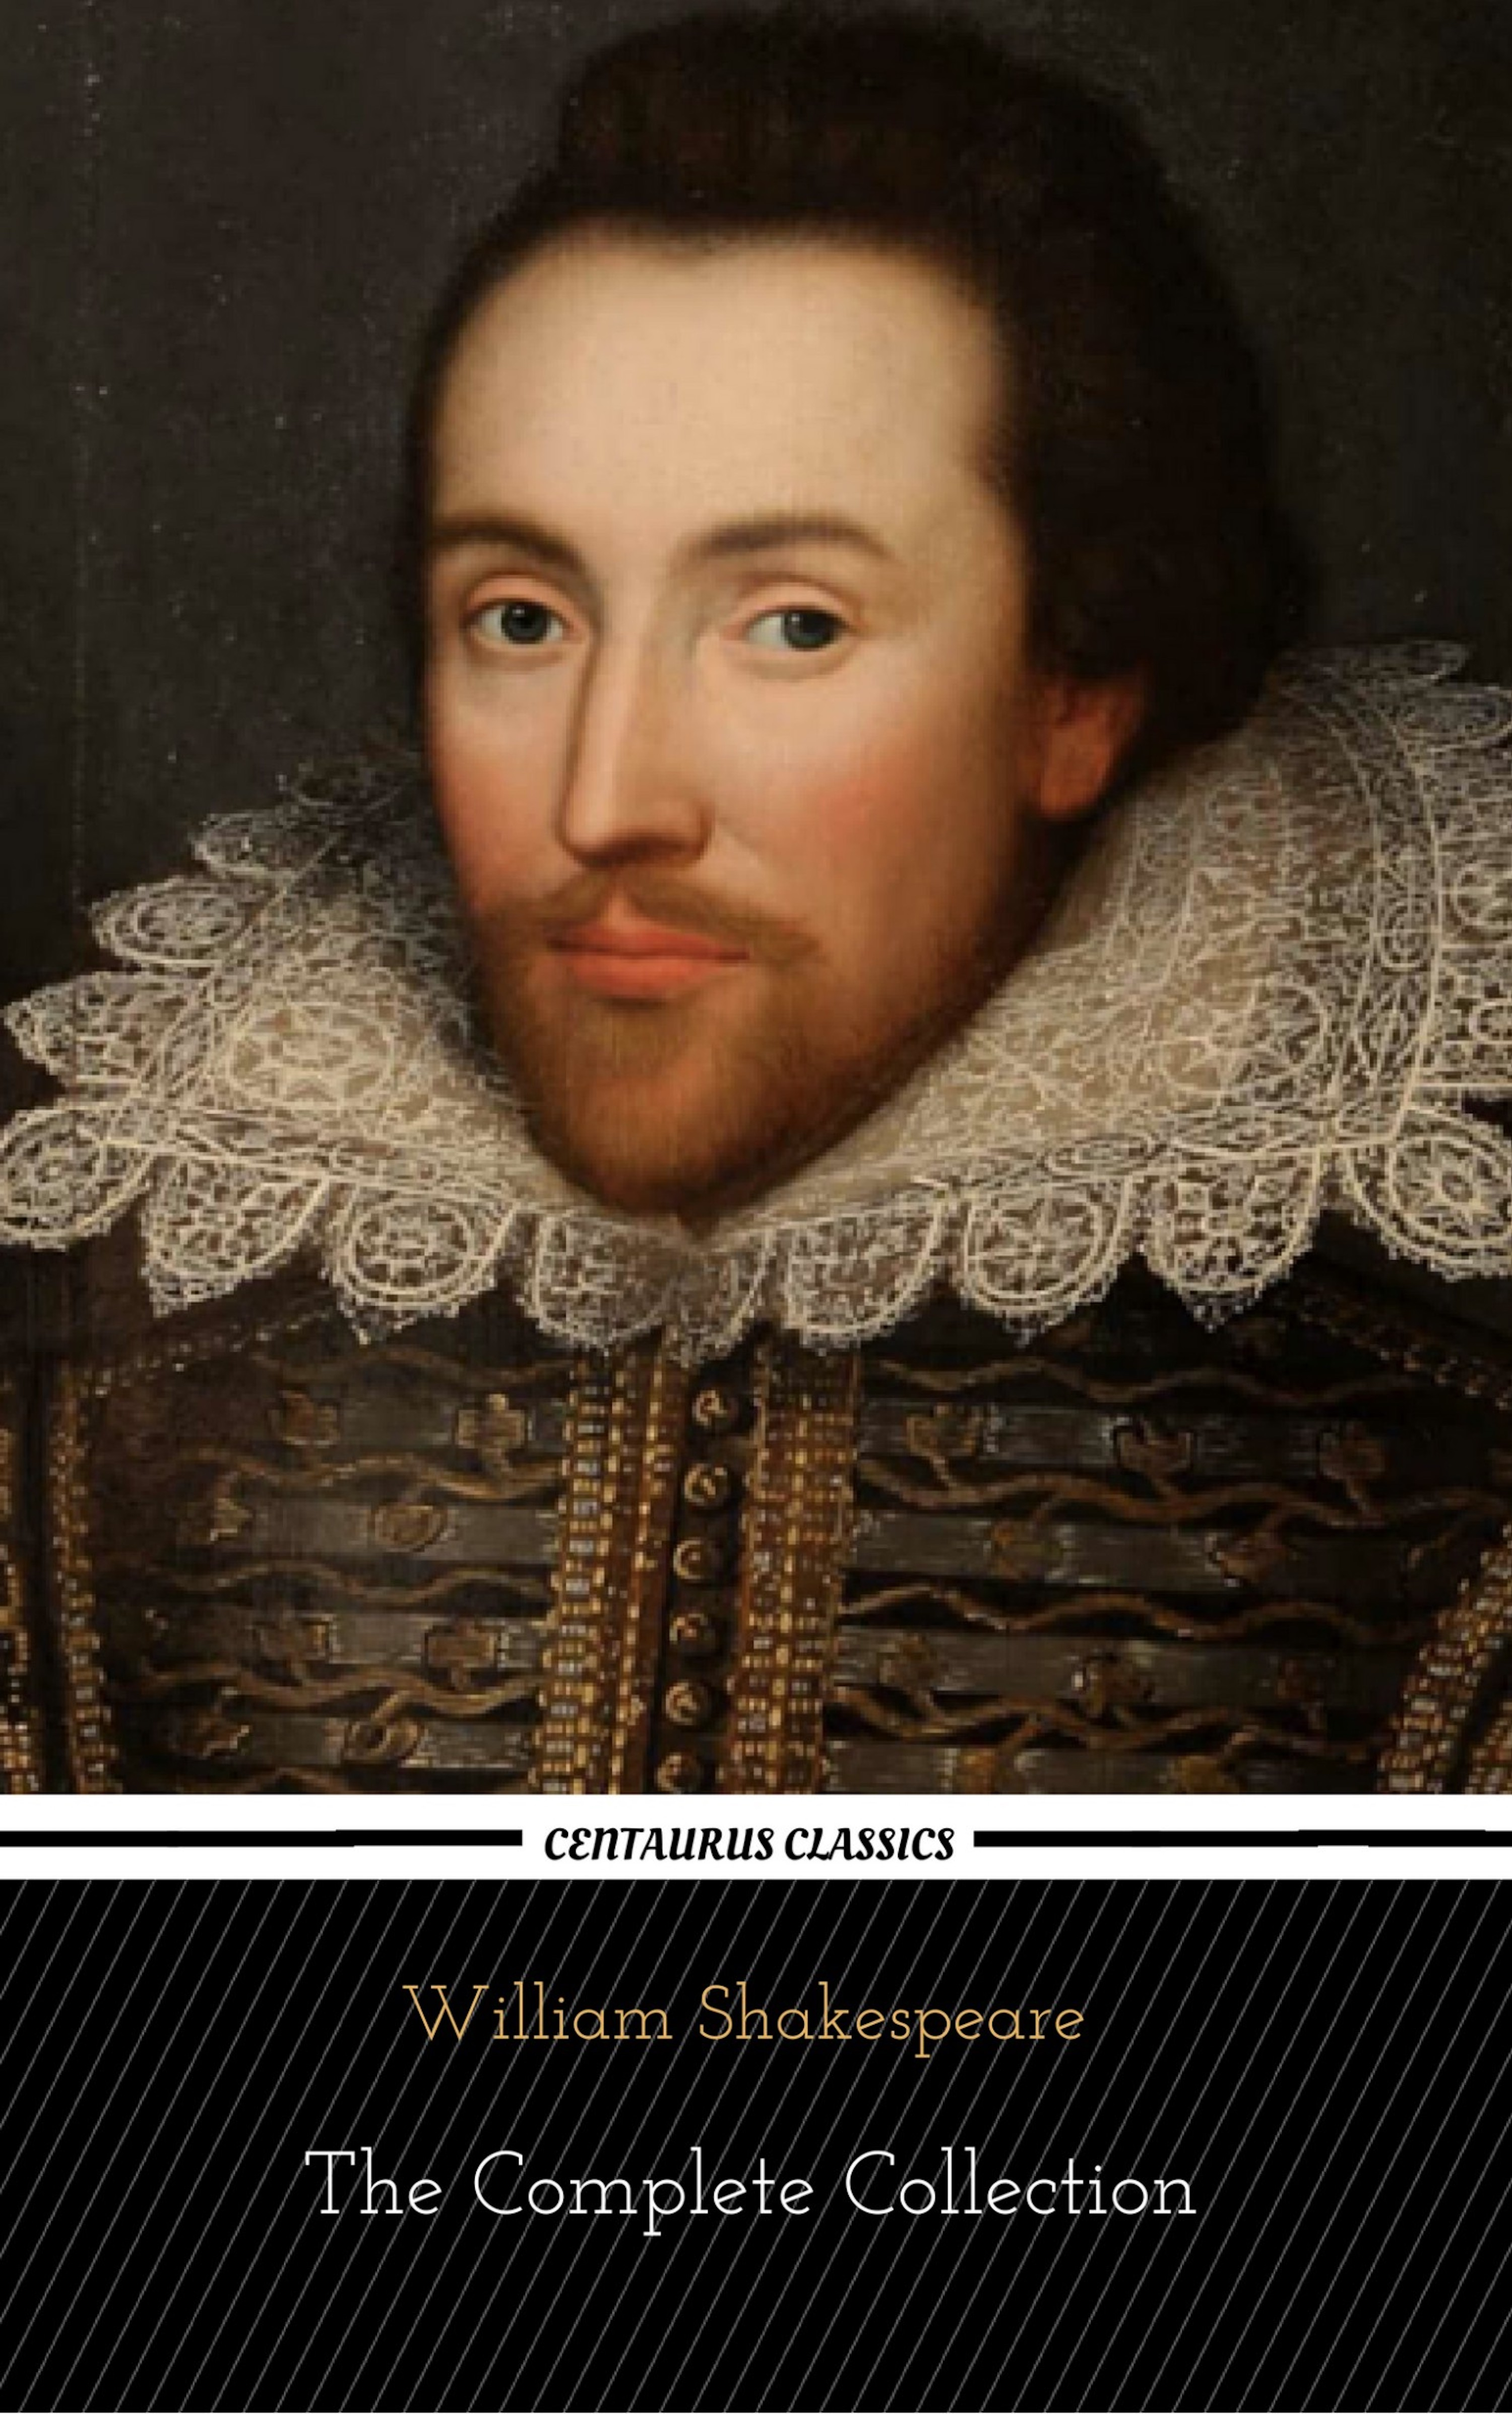 Уильям Шекспир William Shakespeare: The Complete Collection (Centaurus Classics) [37 Plays + 160 Sonnets + 5 Poetry Books + 150 Illustrations]